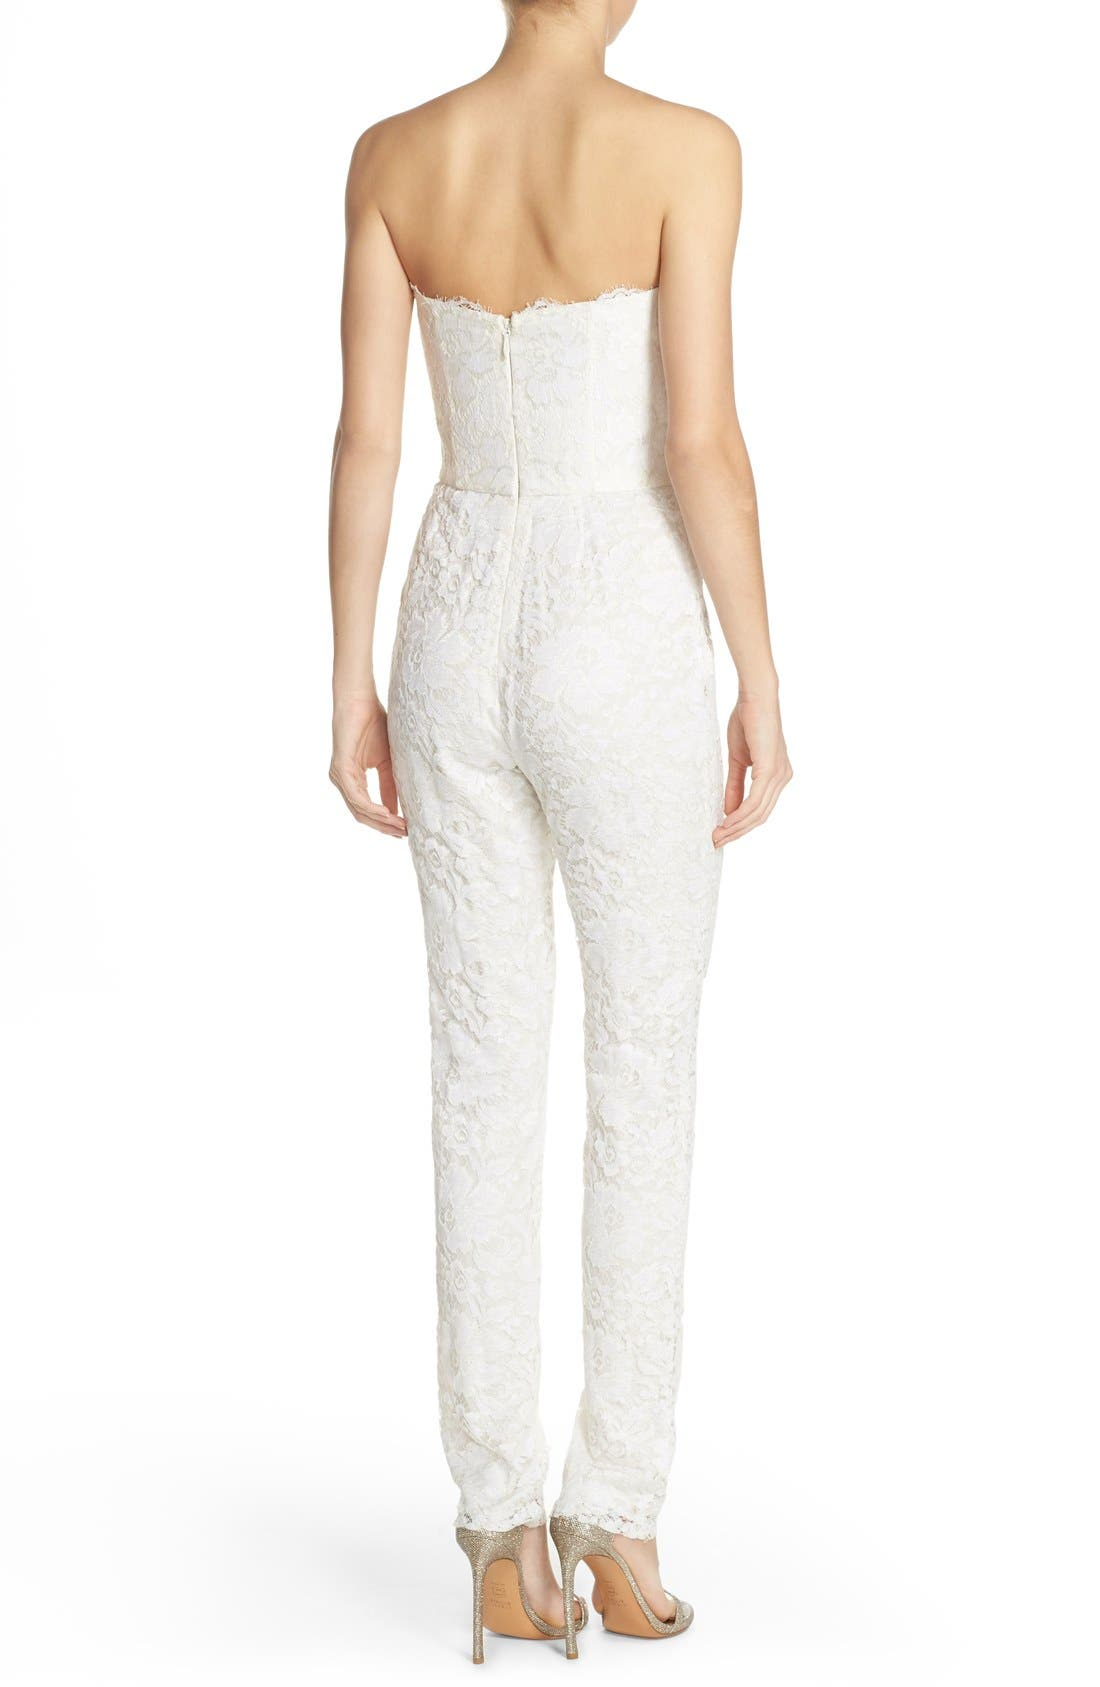 Monique Lhuillier Ready to Wed Strapless Chantilly Lace Jumpsuit,                             Alternate thumbnail 4, color,                             100